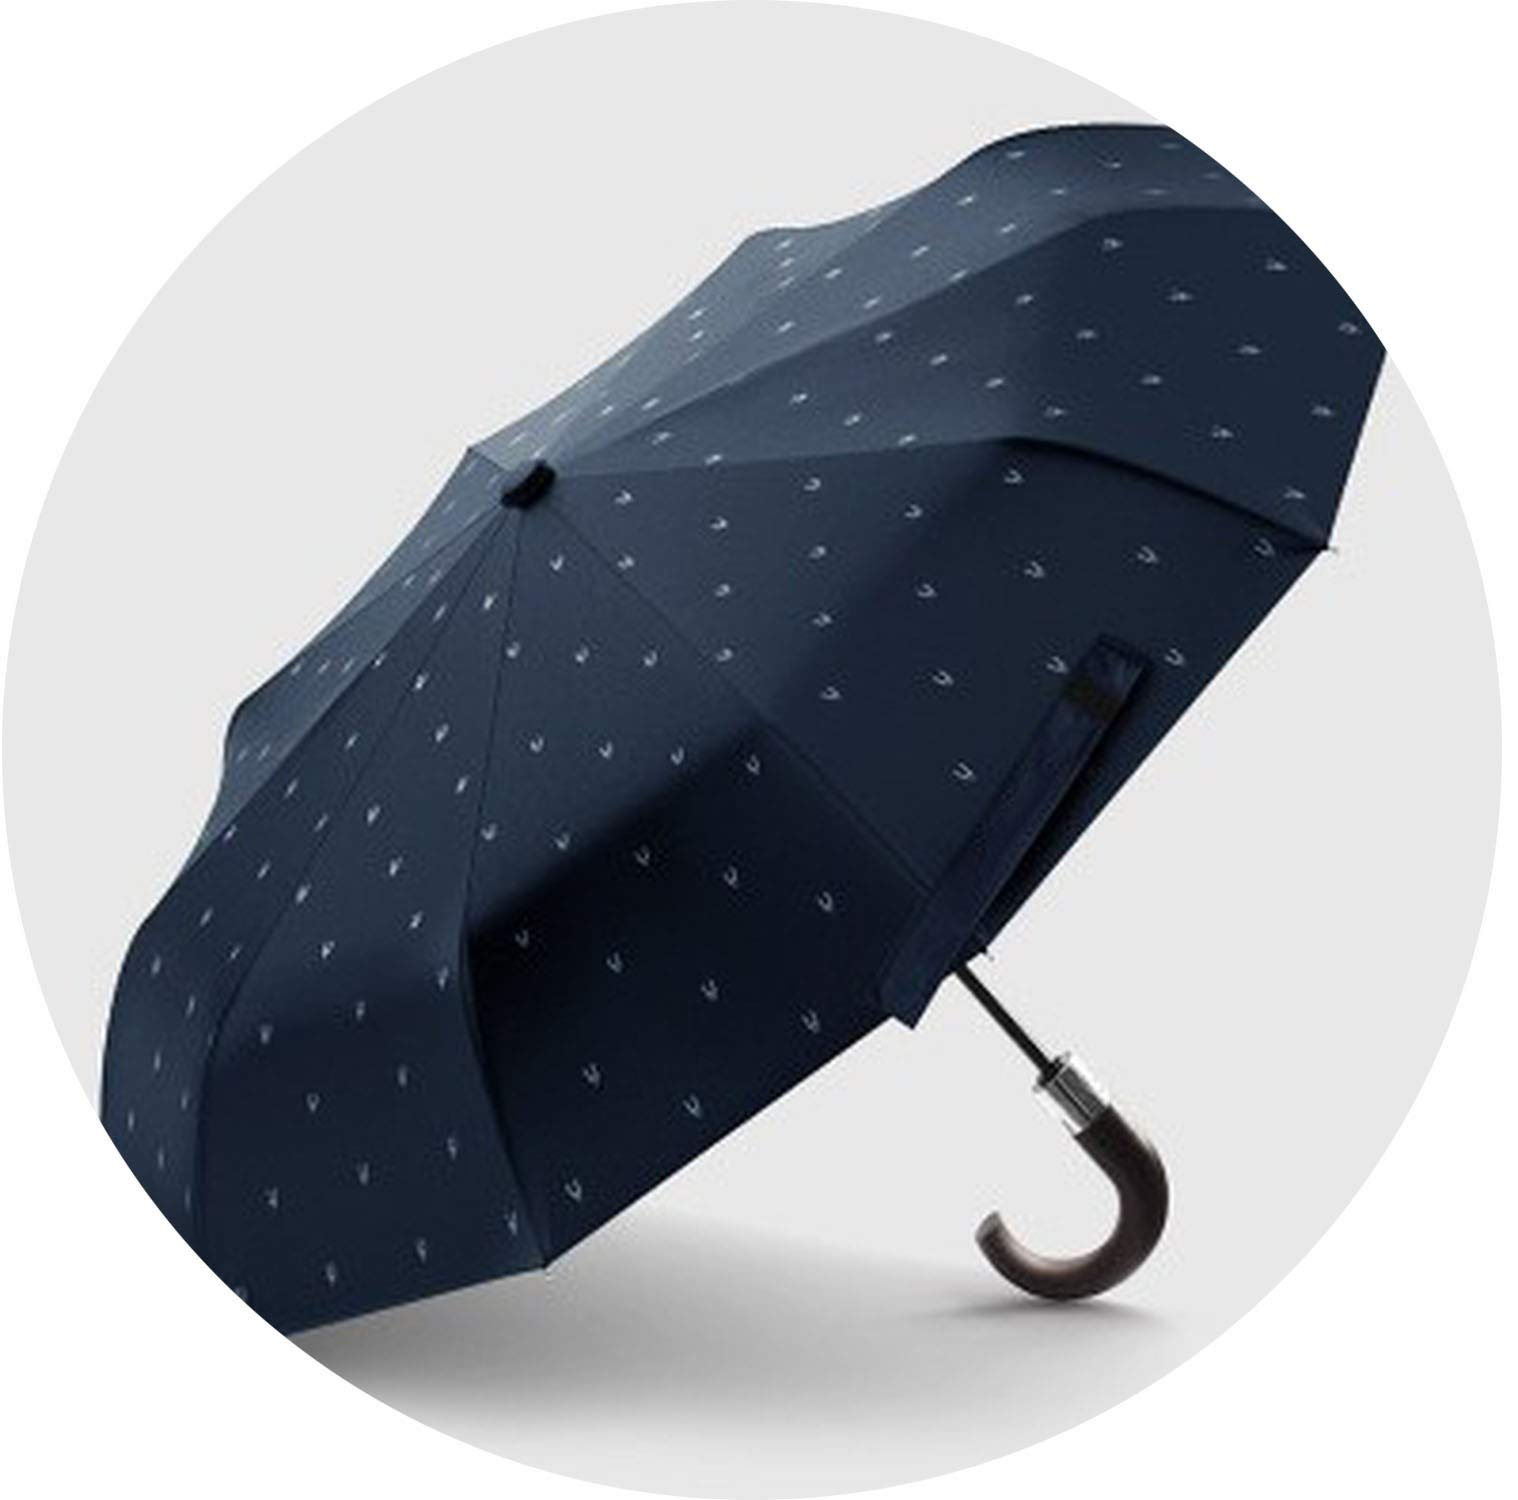 Wind Resistant Folding Automatic Umbrella Male Luxury Big Windproof Umbrellas for Men Rain Black Coating Mens Gifts Nylon XL,blue have pattern